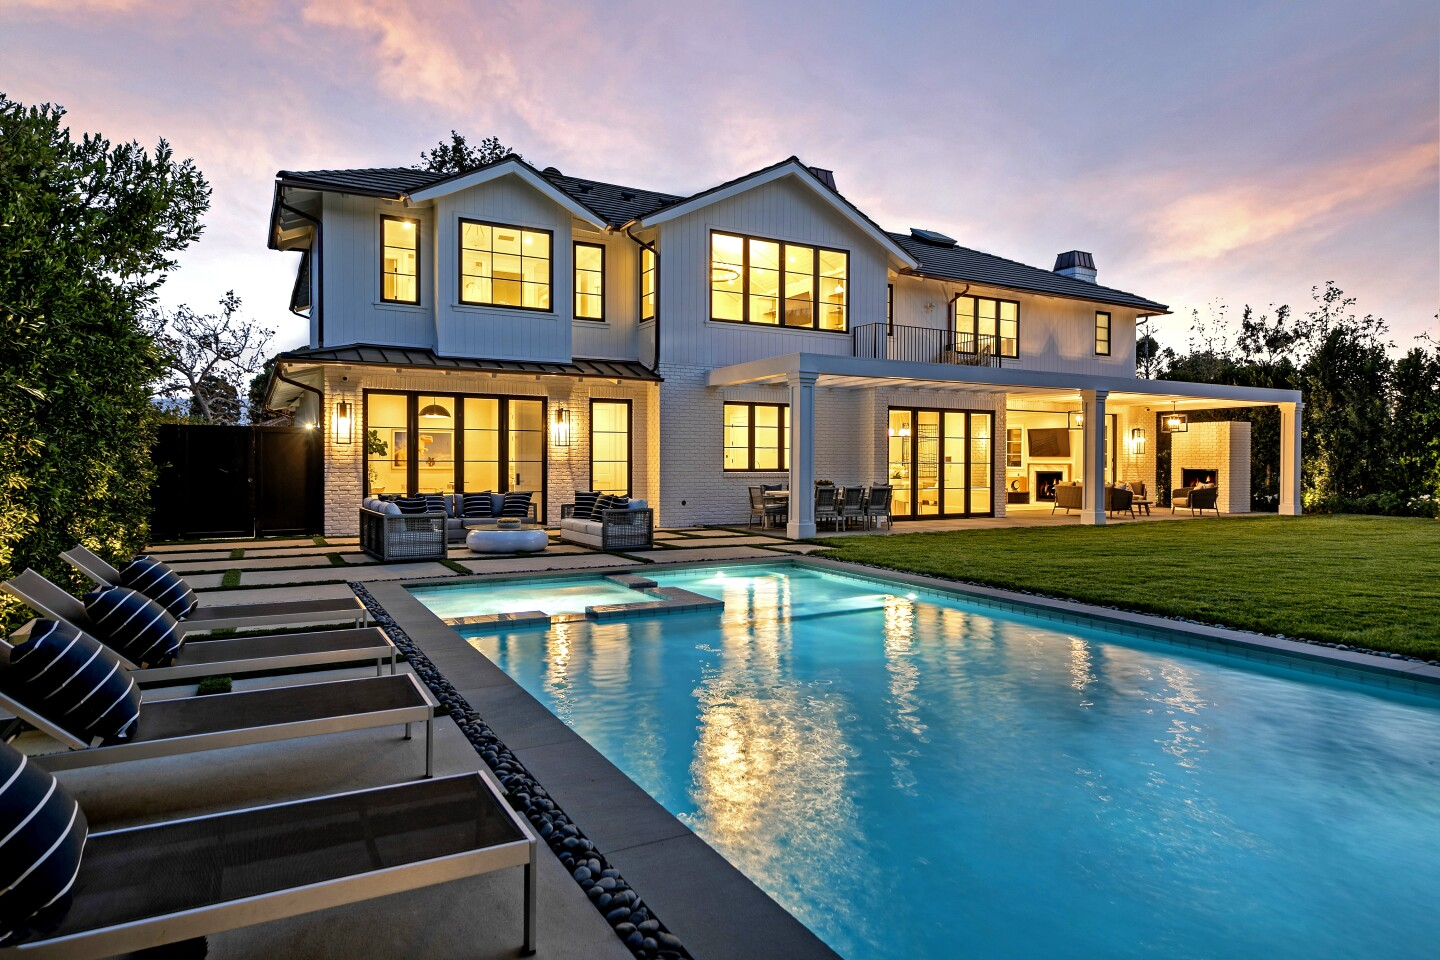 The brand new build sits on a third of an acre, fitting seven bedrooms and 8.5 bathrooms into 9,000 square $14 million - Pacific Palisades Luxury real estate developer Fred Magid took bronze last month, selling a brand new traditional-style estate for $14 million.Perched on a third of an acre about a mile from the ocean, the home fits seven bedrooms and 8.5 bathrooms into 9,000 square feet, including an owner's suite under vaulted ceilings that expands to a private balcony. Down below, a covered patio with a whitewashed brick fireplace leads to a grassy yard with a pool.James Harris and David Parnes of the Agency held the listing. Fredrik Eklund of Douglas Elliman represented the buyer.feet.